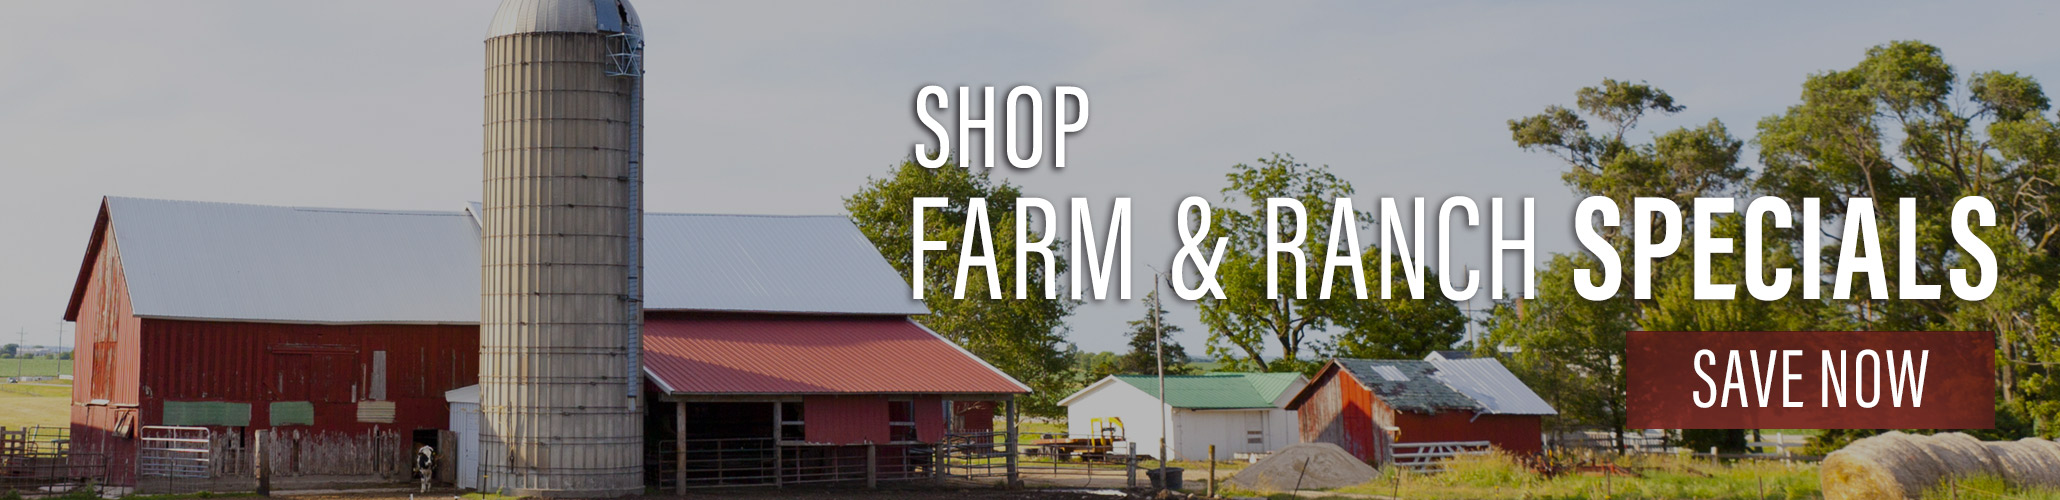 Farm & Ranch Specials Save Now